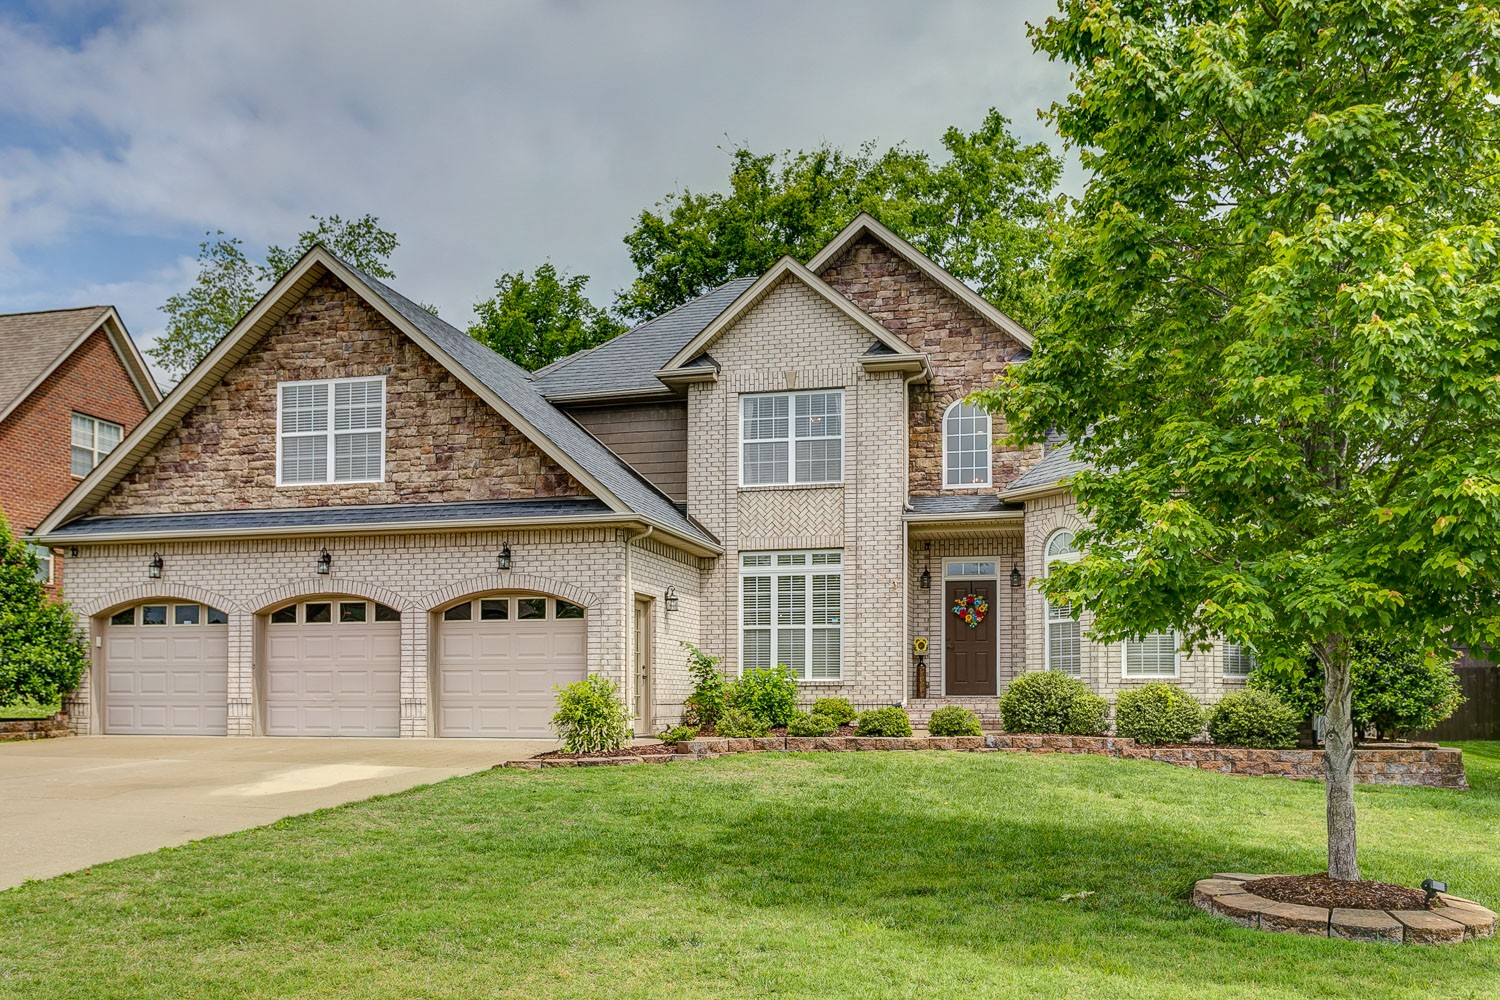 AMAZING Williamson County Spring Hill home with private fenced yard and 3 car garage.  This home boasts a secondary first floor bedroom with hardwoods; perfect for a bedroom or an office.  Enjoy the open concept layout and spa like master bathroom.